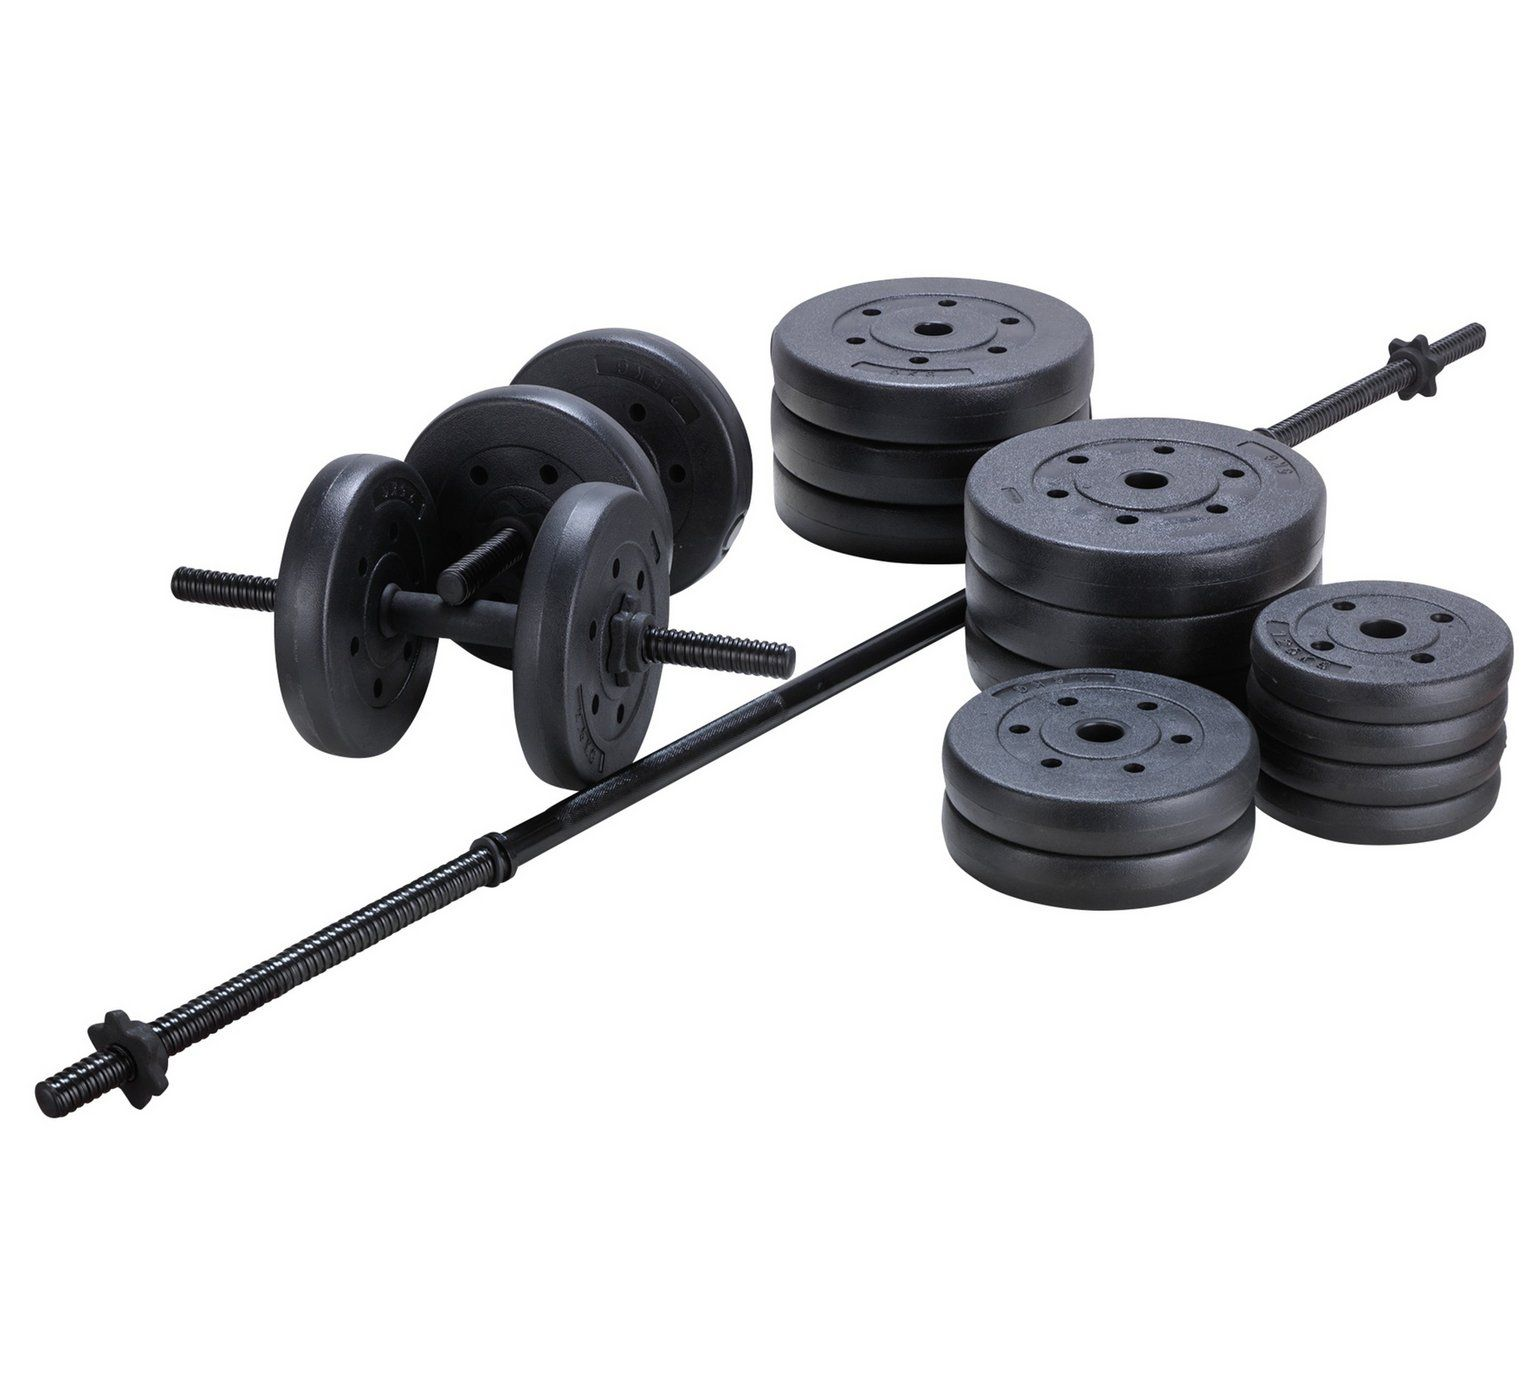 Argos Gym Equipment Weights Kayayoga Co